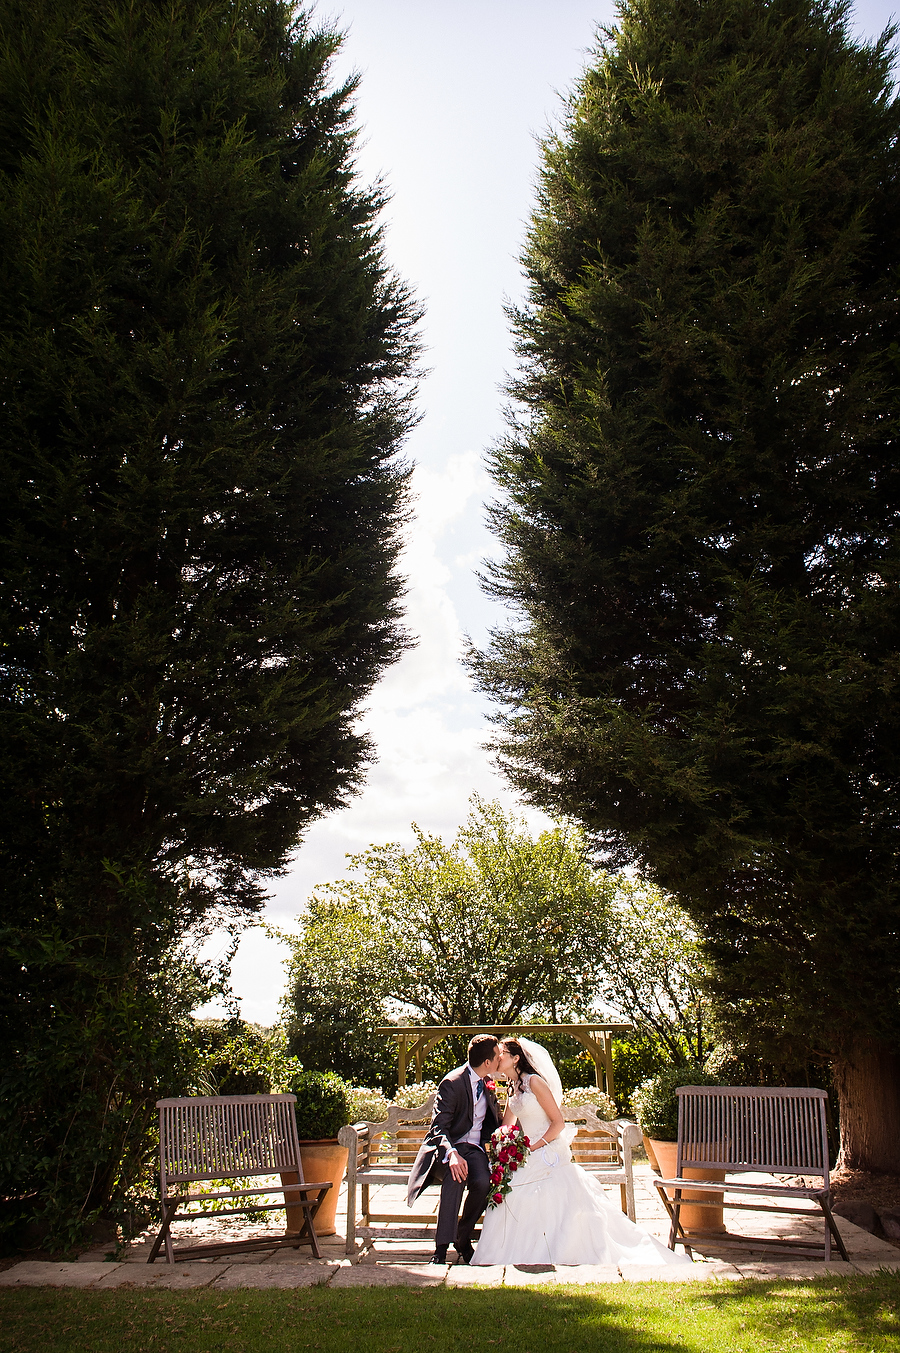 Elegant portrait in the gardens at Packington Moor in Lichfield by Award Winning Wedding Photographer Barry James